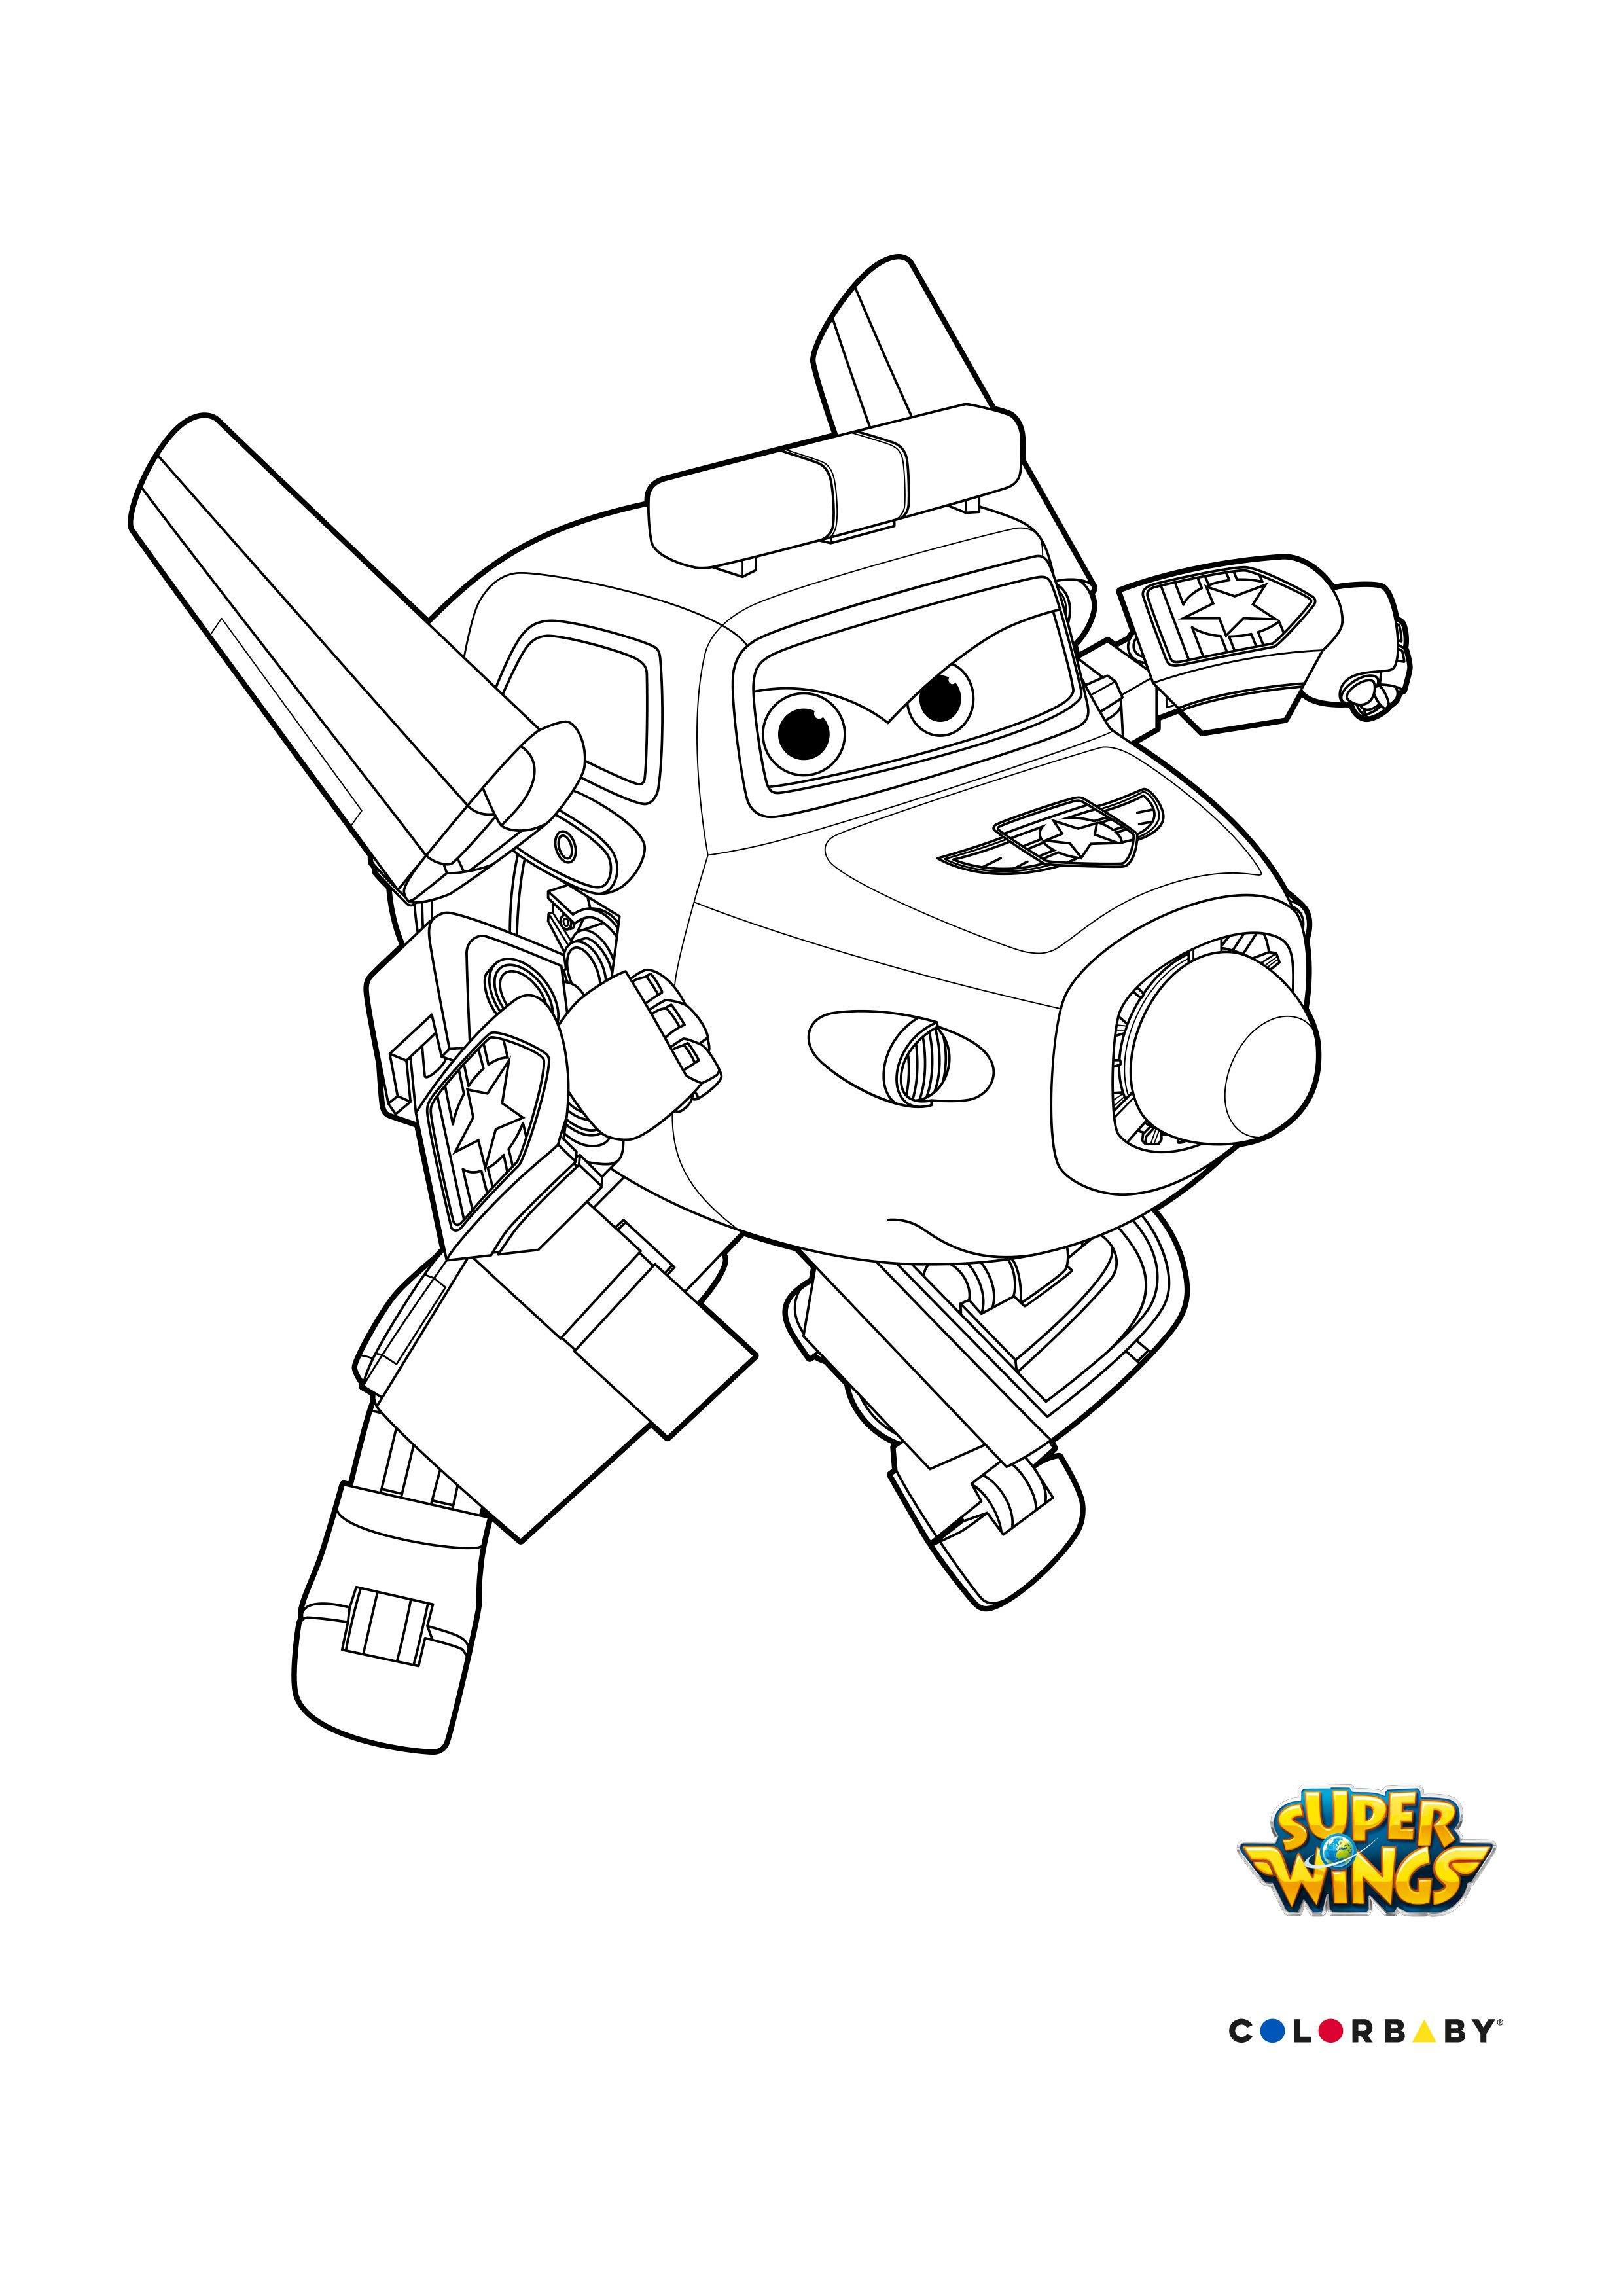 Dibujos Colorear Super Wings Paul Coloring Pages Coloring Pages